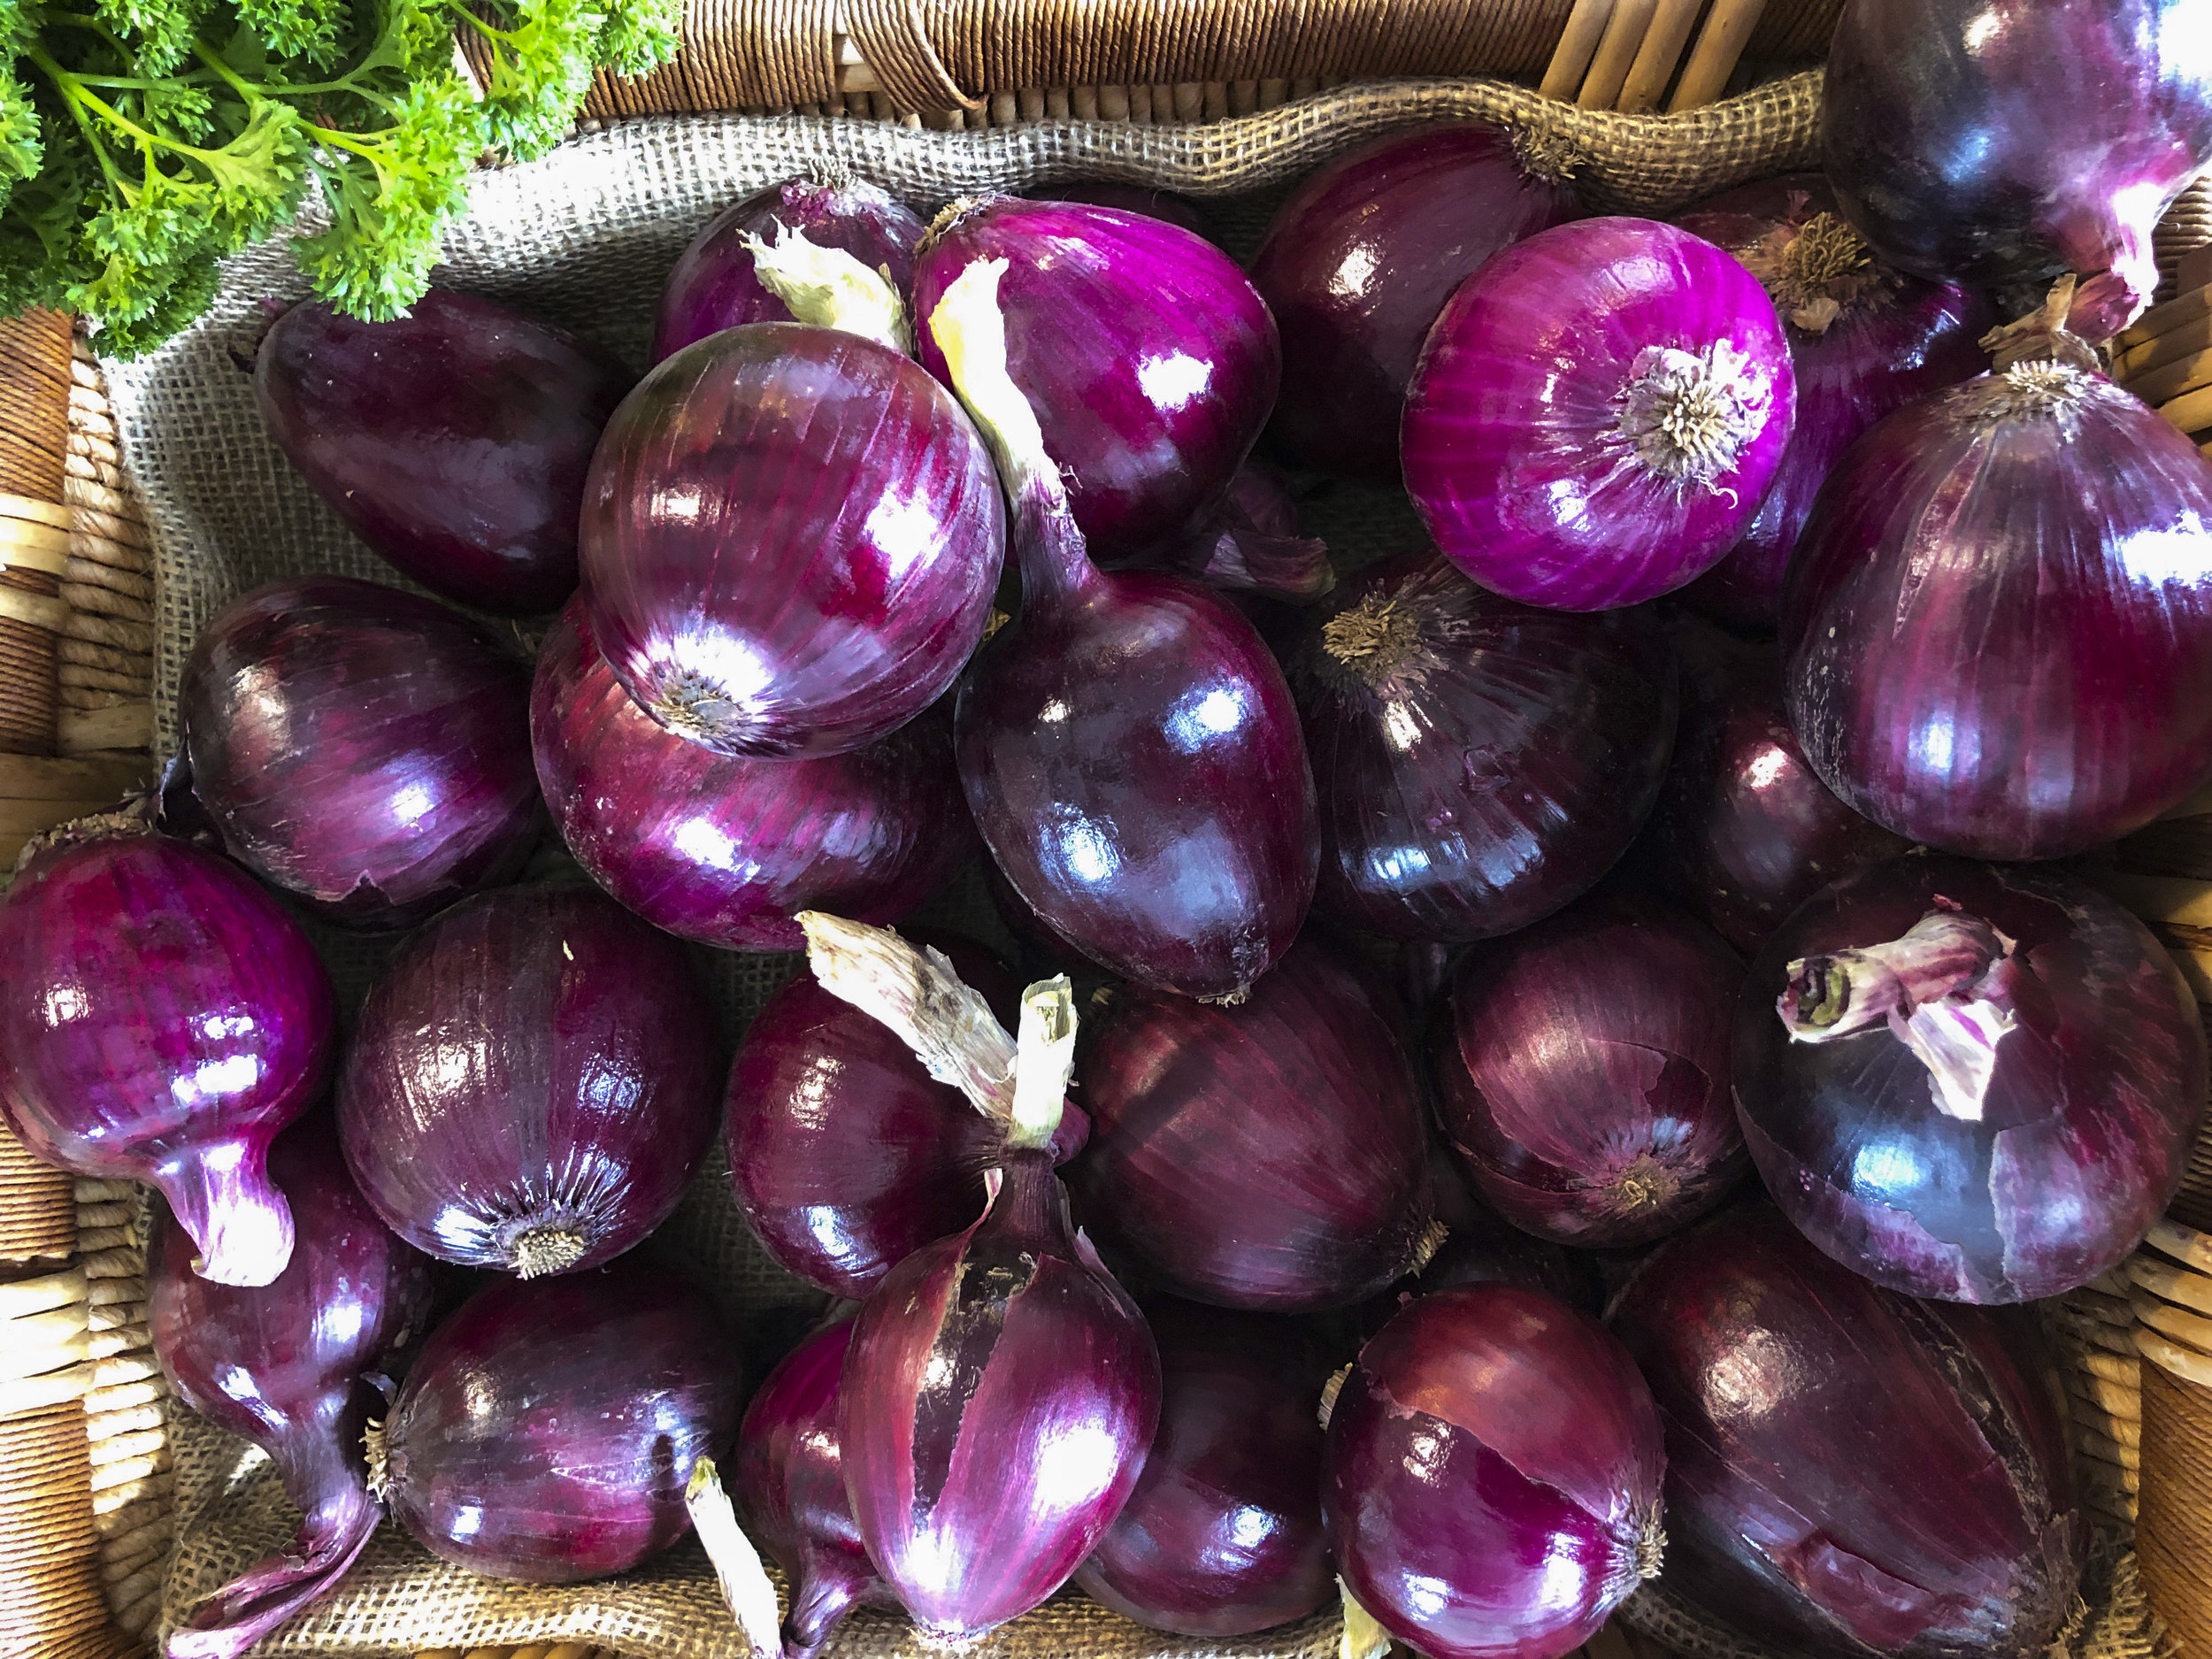 Red Onions - Gorgeous red onions only $3.50 per kgFull of flavour and they look amazing